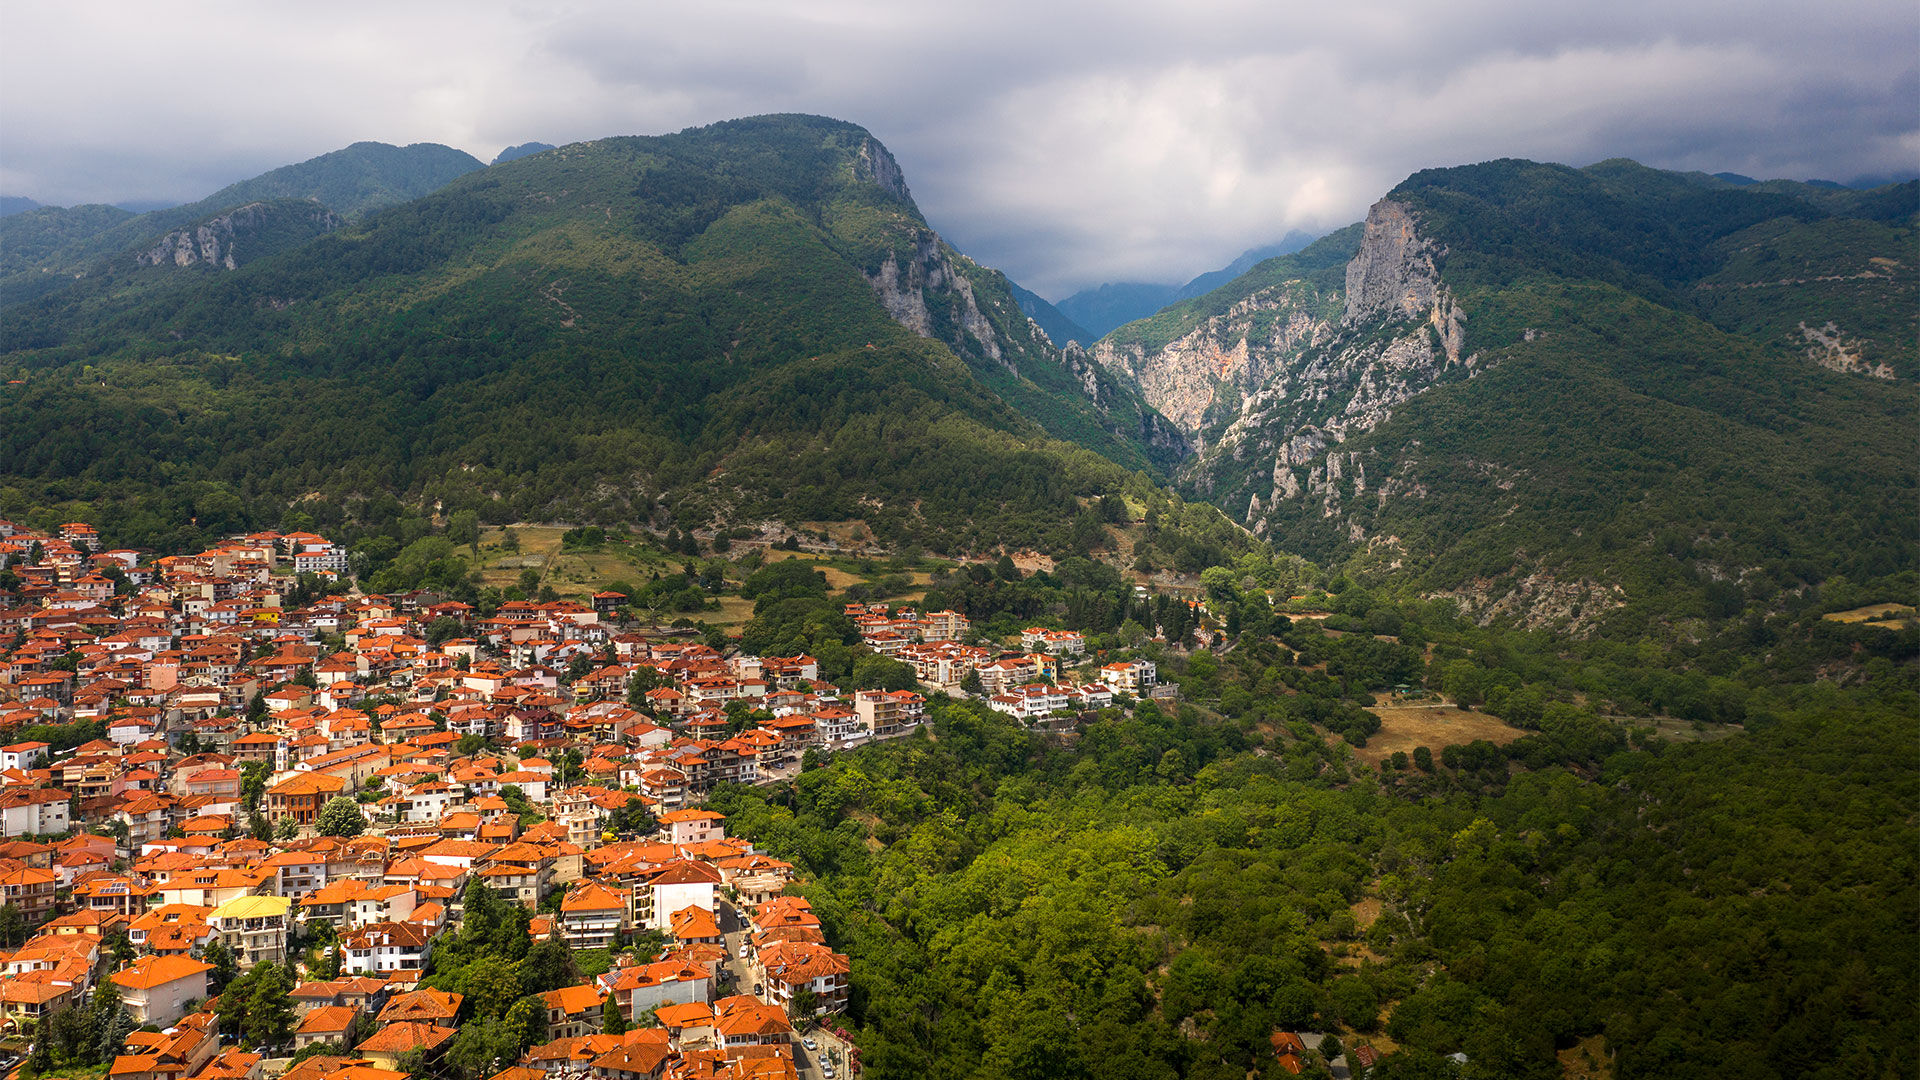 Village life still beats strongly in the small town of Litochoro, the base for so many adventures on Mt Olympus